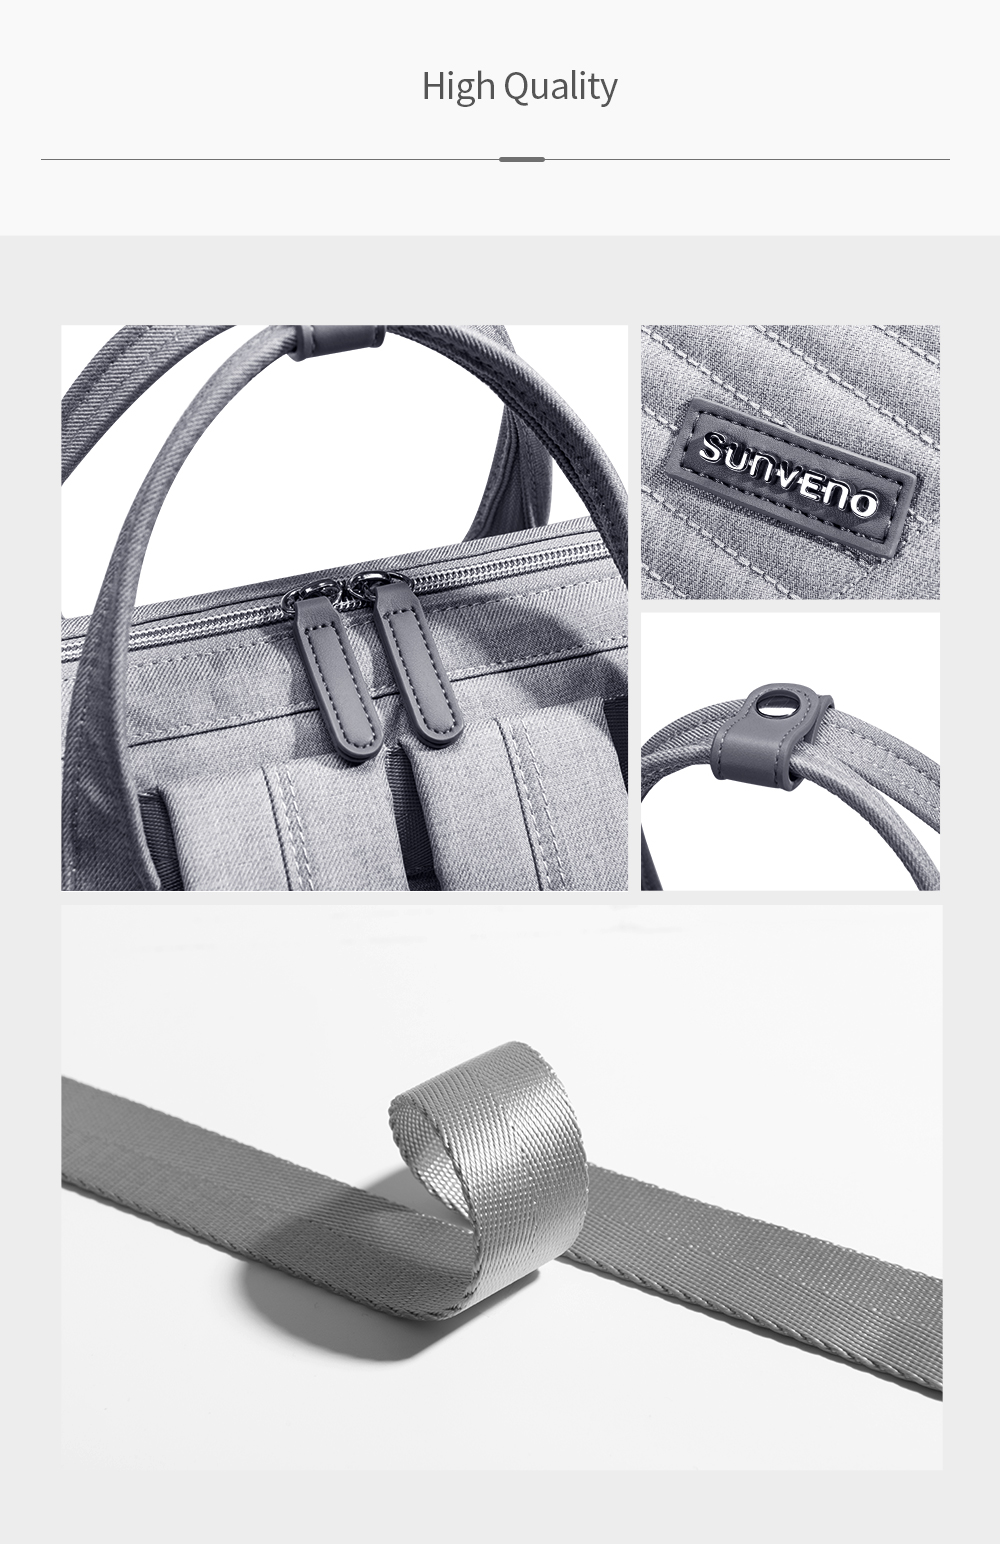 Hdcc2e09dba204565b4262a8310858d1aF Sunveno Fashion Diaper Bag Backpack Quilted Large Mum Maternity Nursing Bag Travel Backpack Stroller Baby Bag Nappy Baby Care